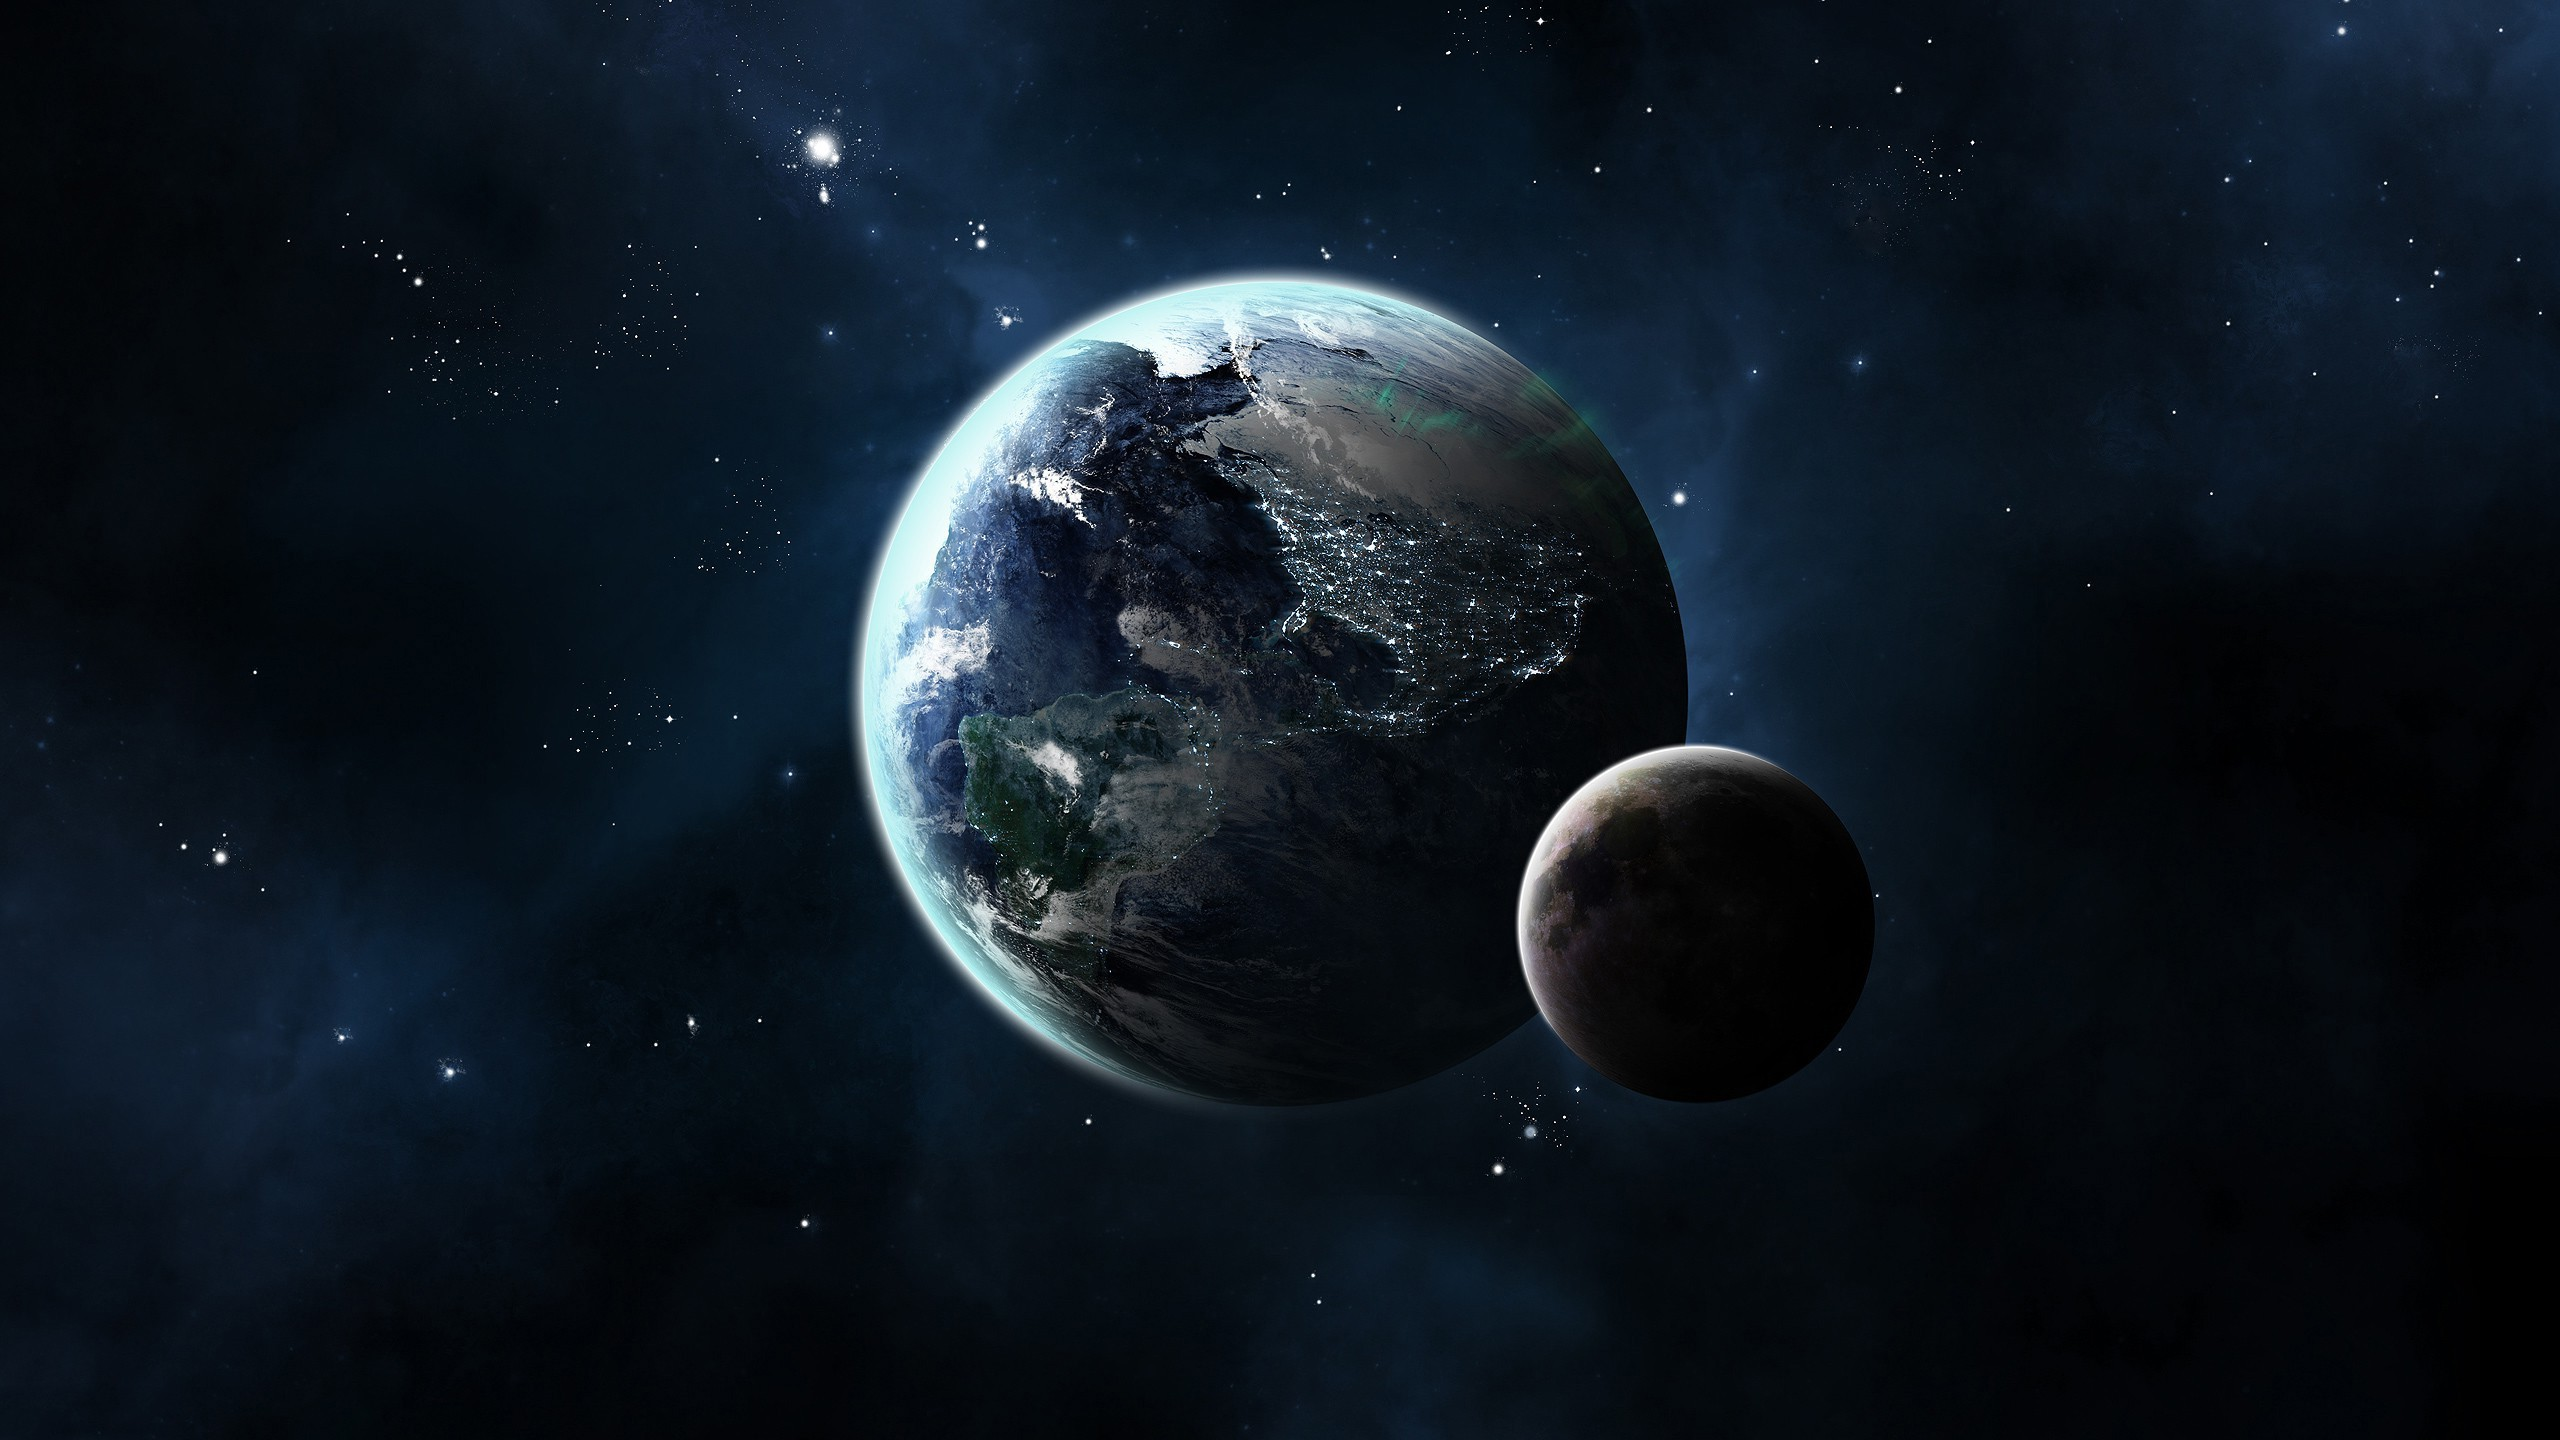 Earth and Moon Wallpaper